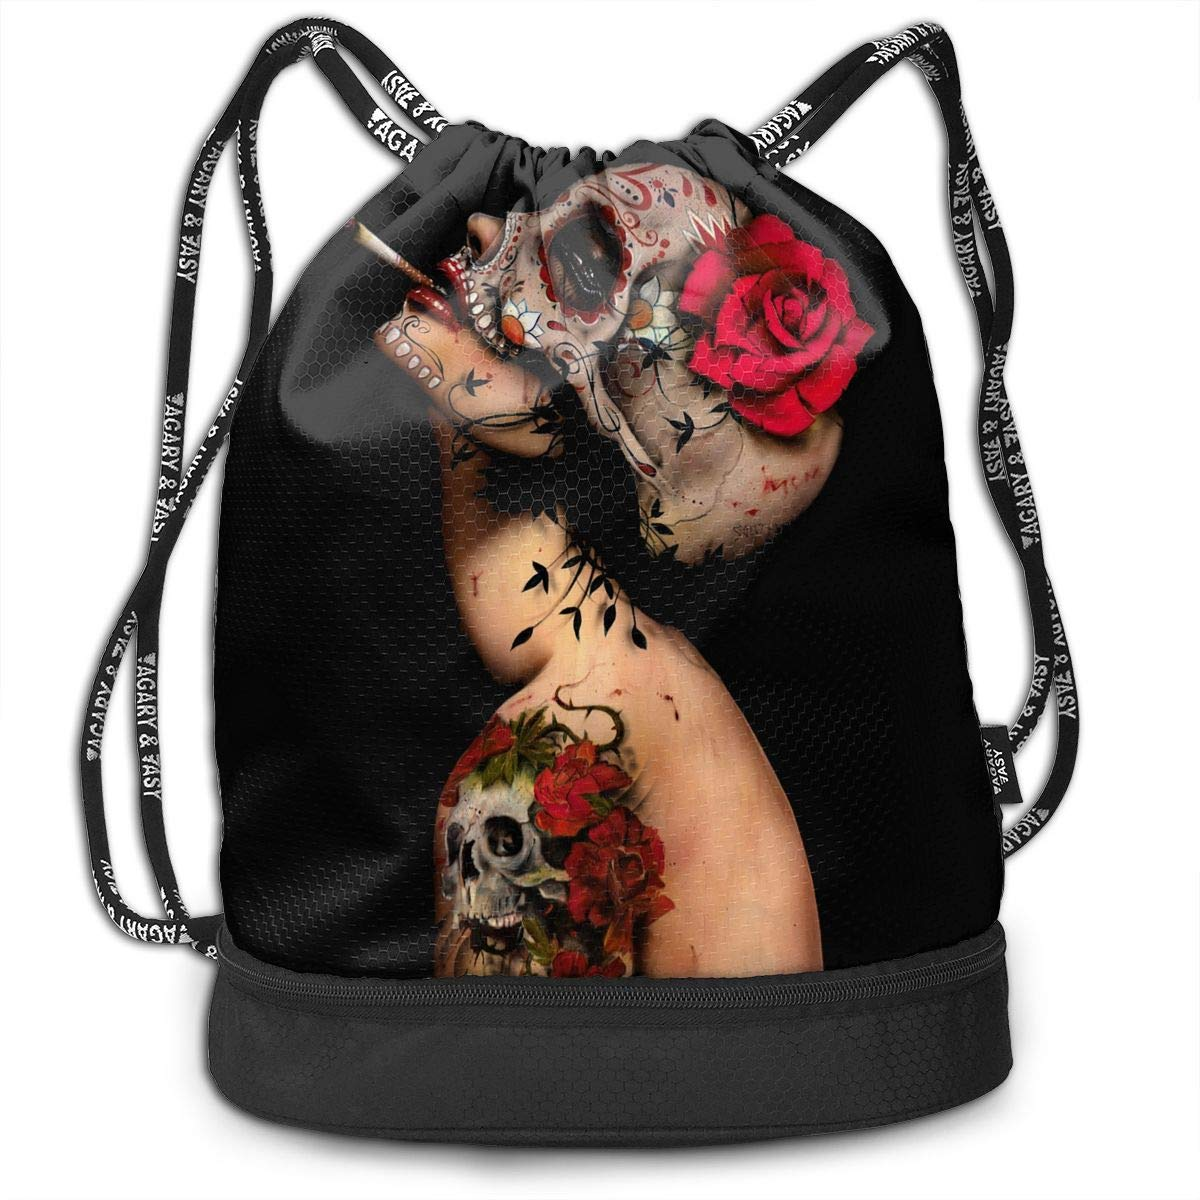 Amazon.com: 3D Print Drawstring Backpack - Viva La Muerte ...